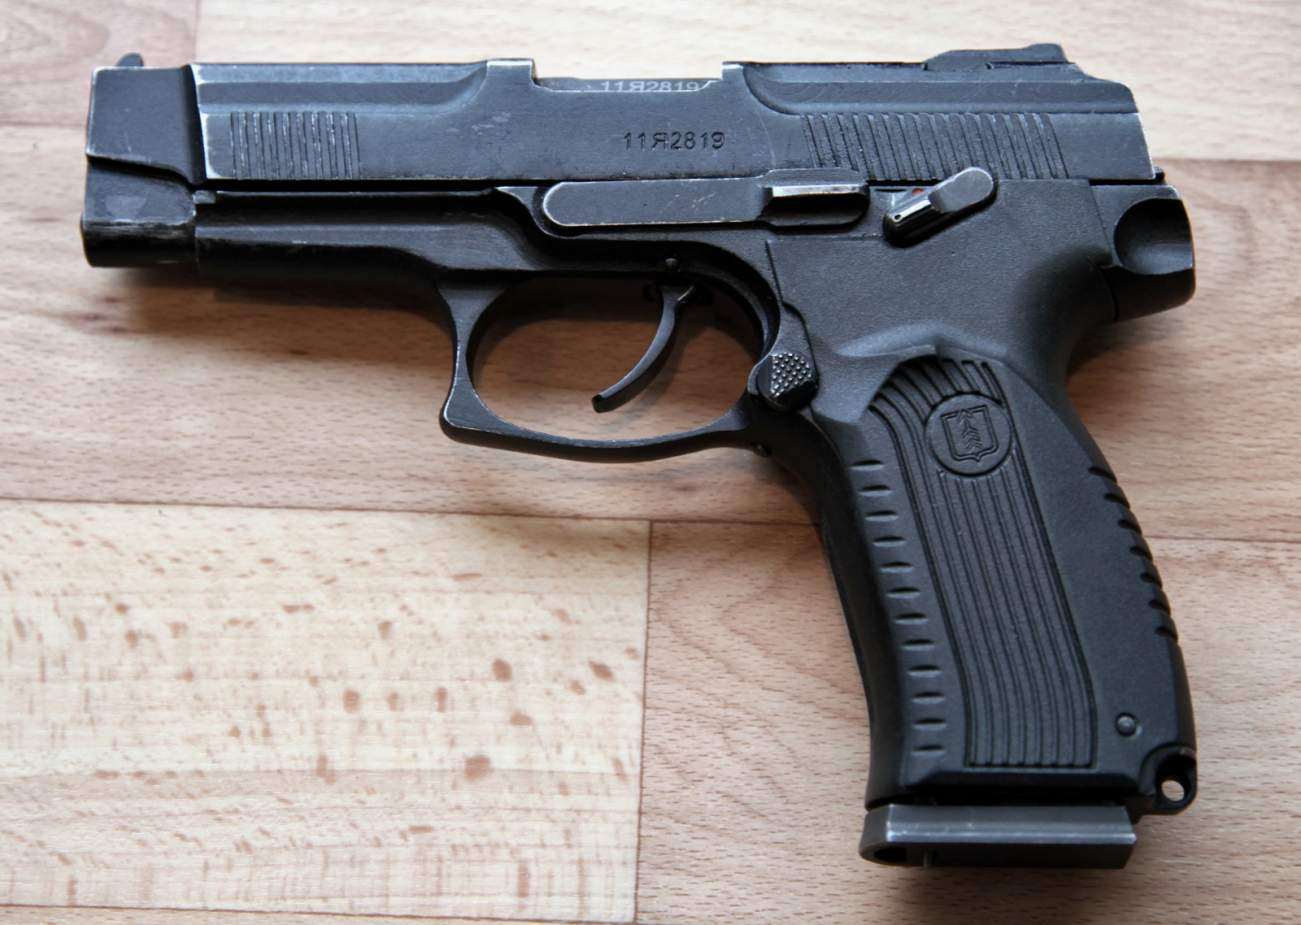 They Might Not be Famous Like Glock, But Russian Guns Have 1 Amazing Feature